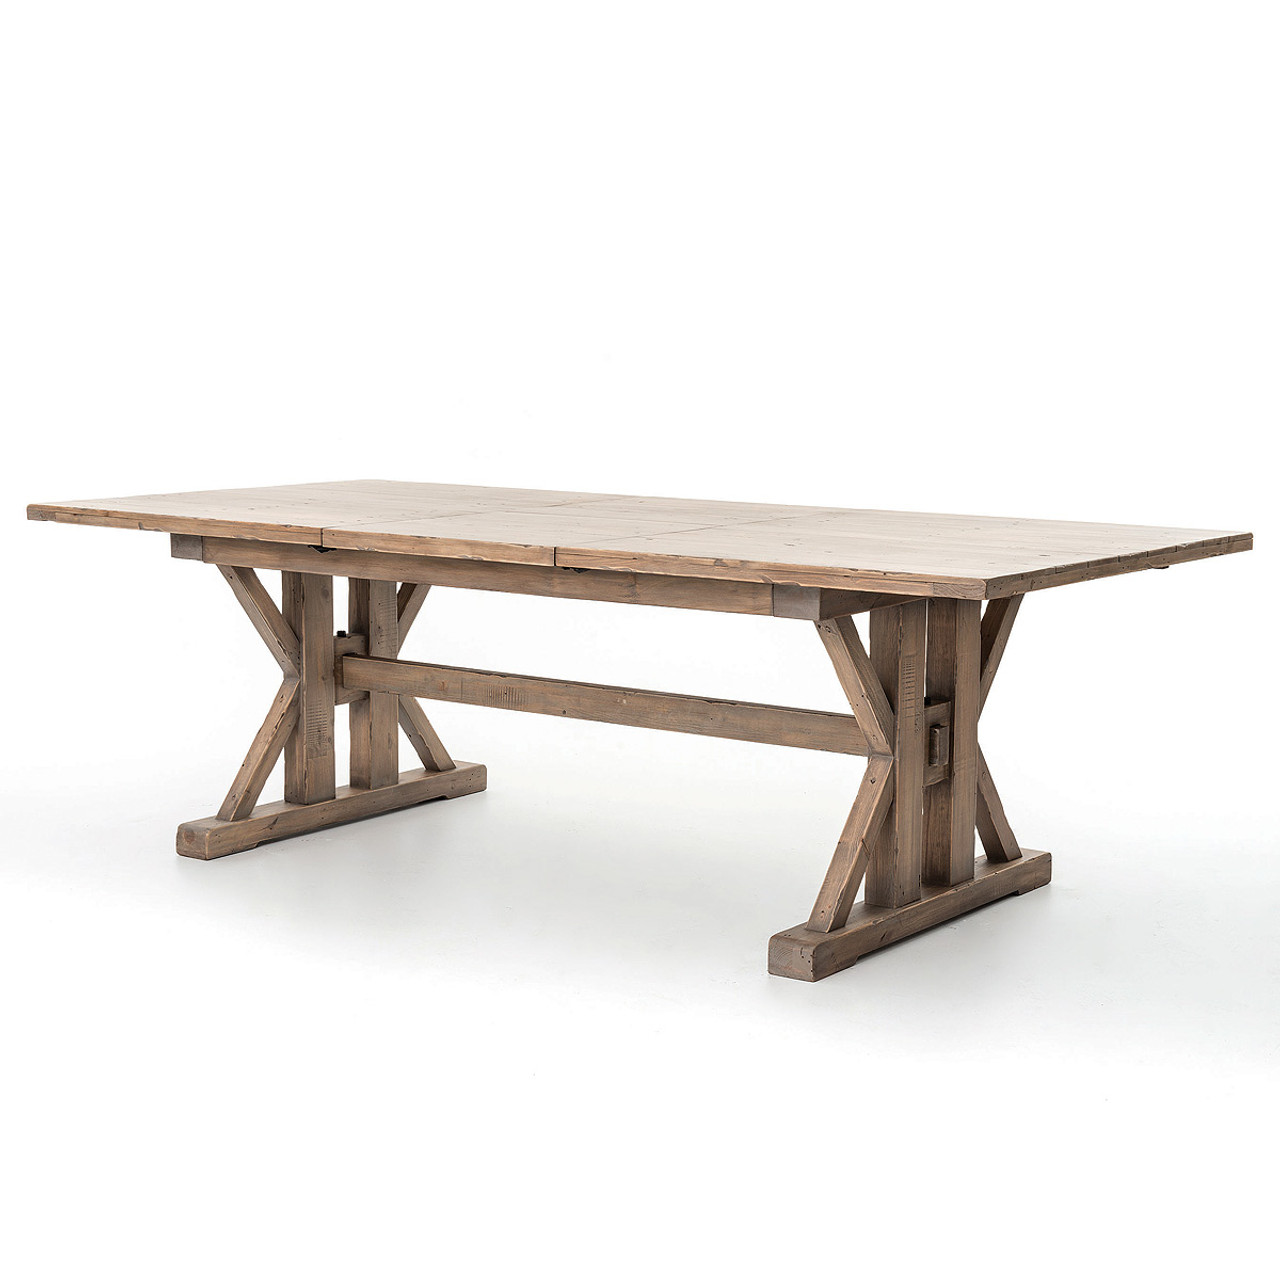 Natural Wood Dining Room Tables: Coastal Natural Wood Trestle Extension Dining Table 96